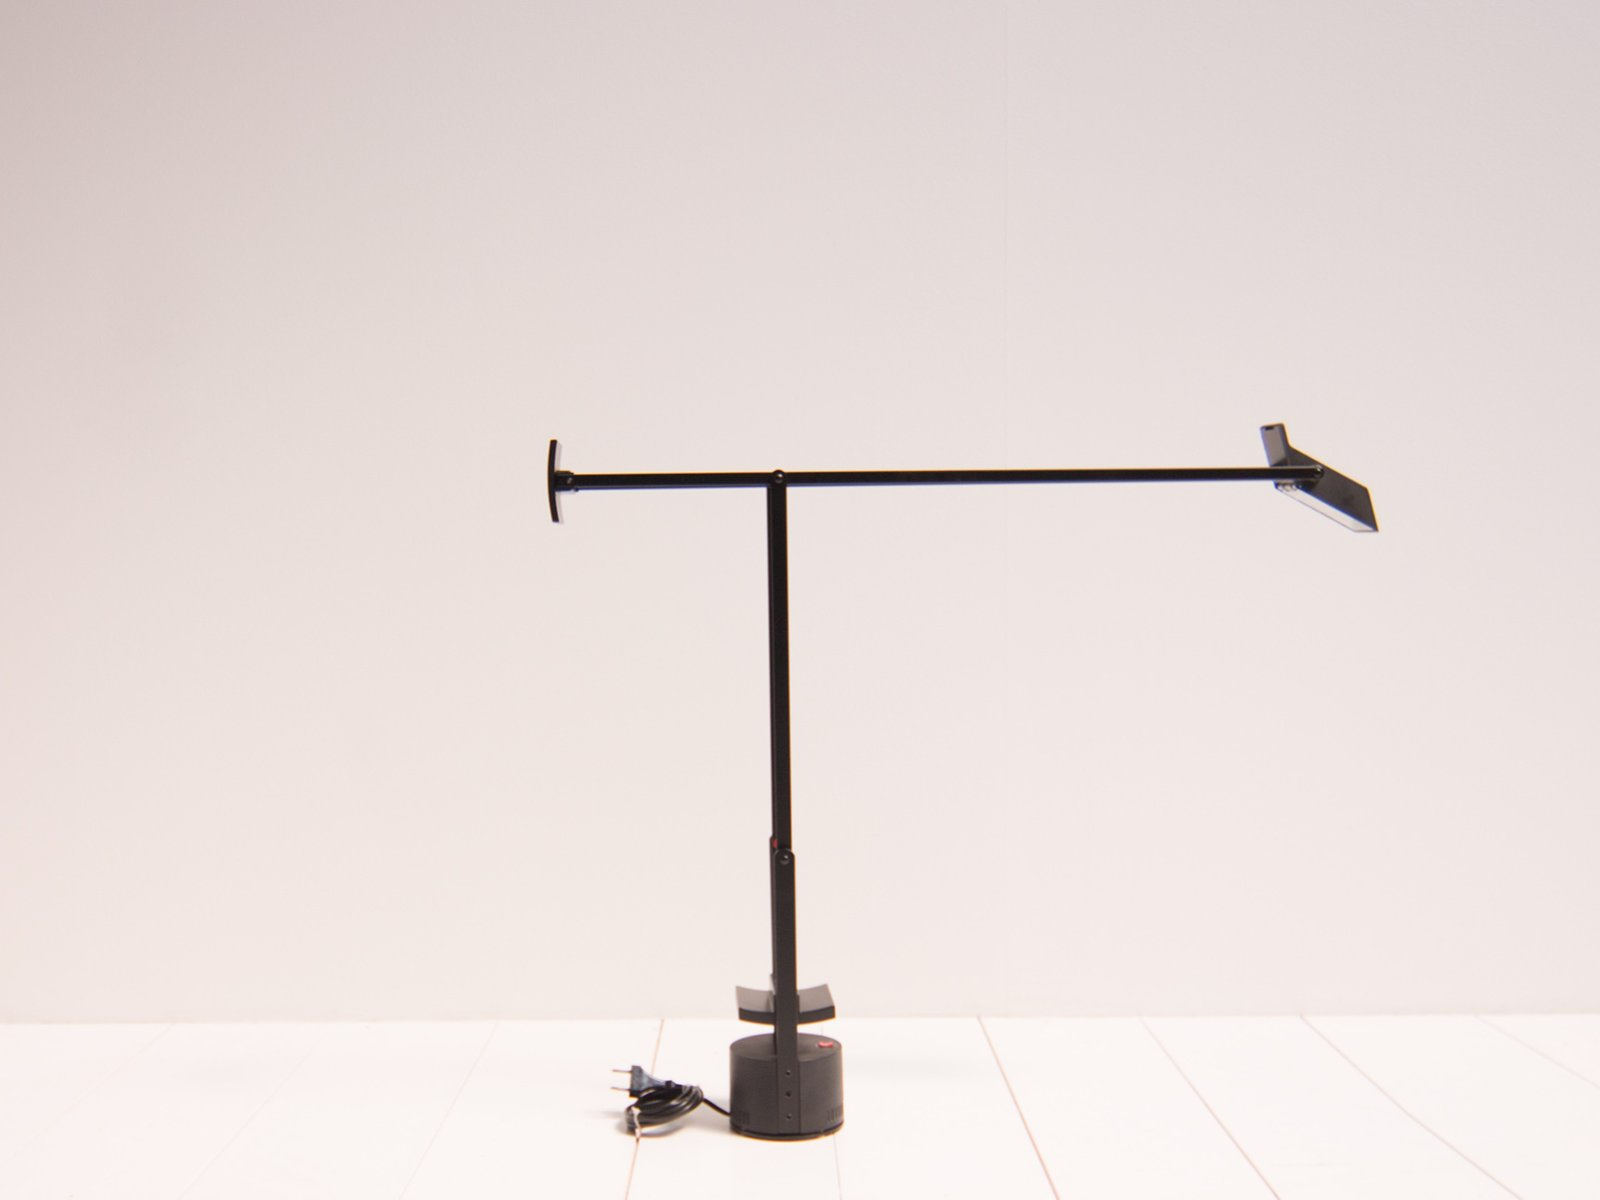 Mid Century Tizio Table Lamp By Richard Sapper For Artemide For Sale